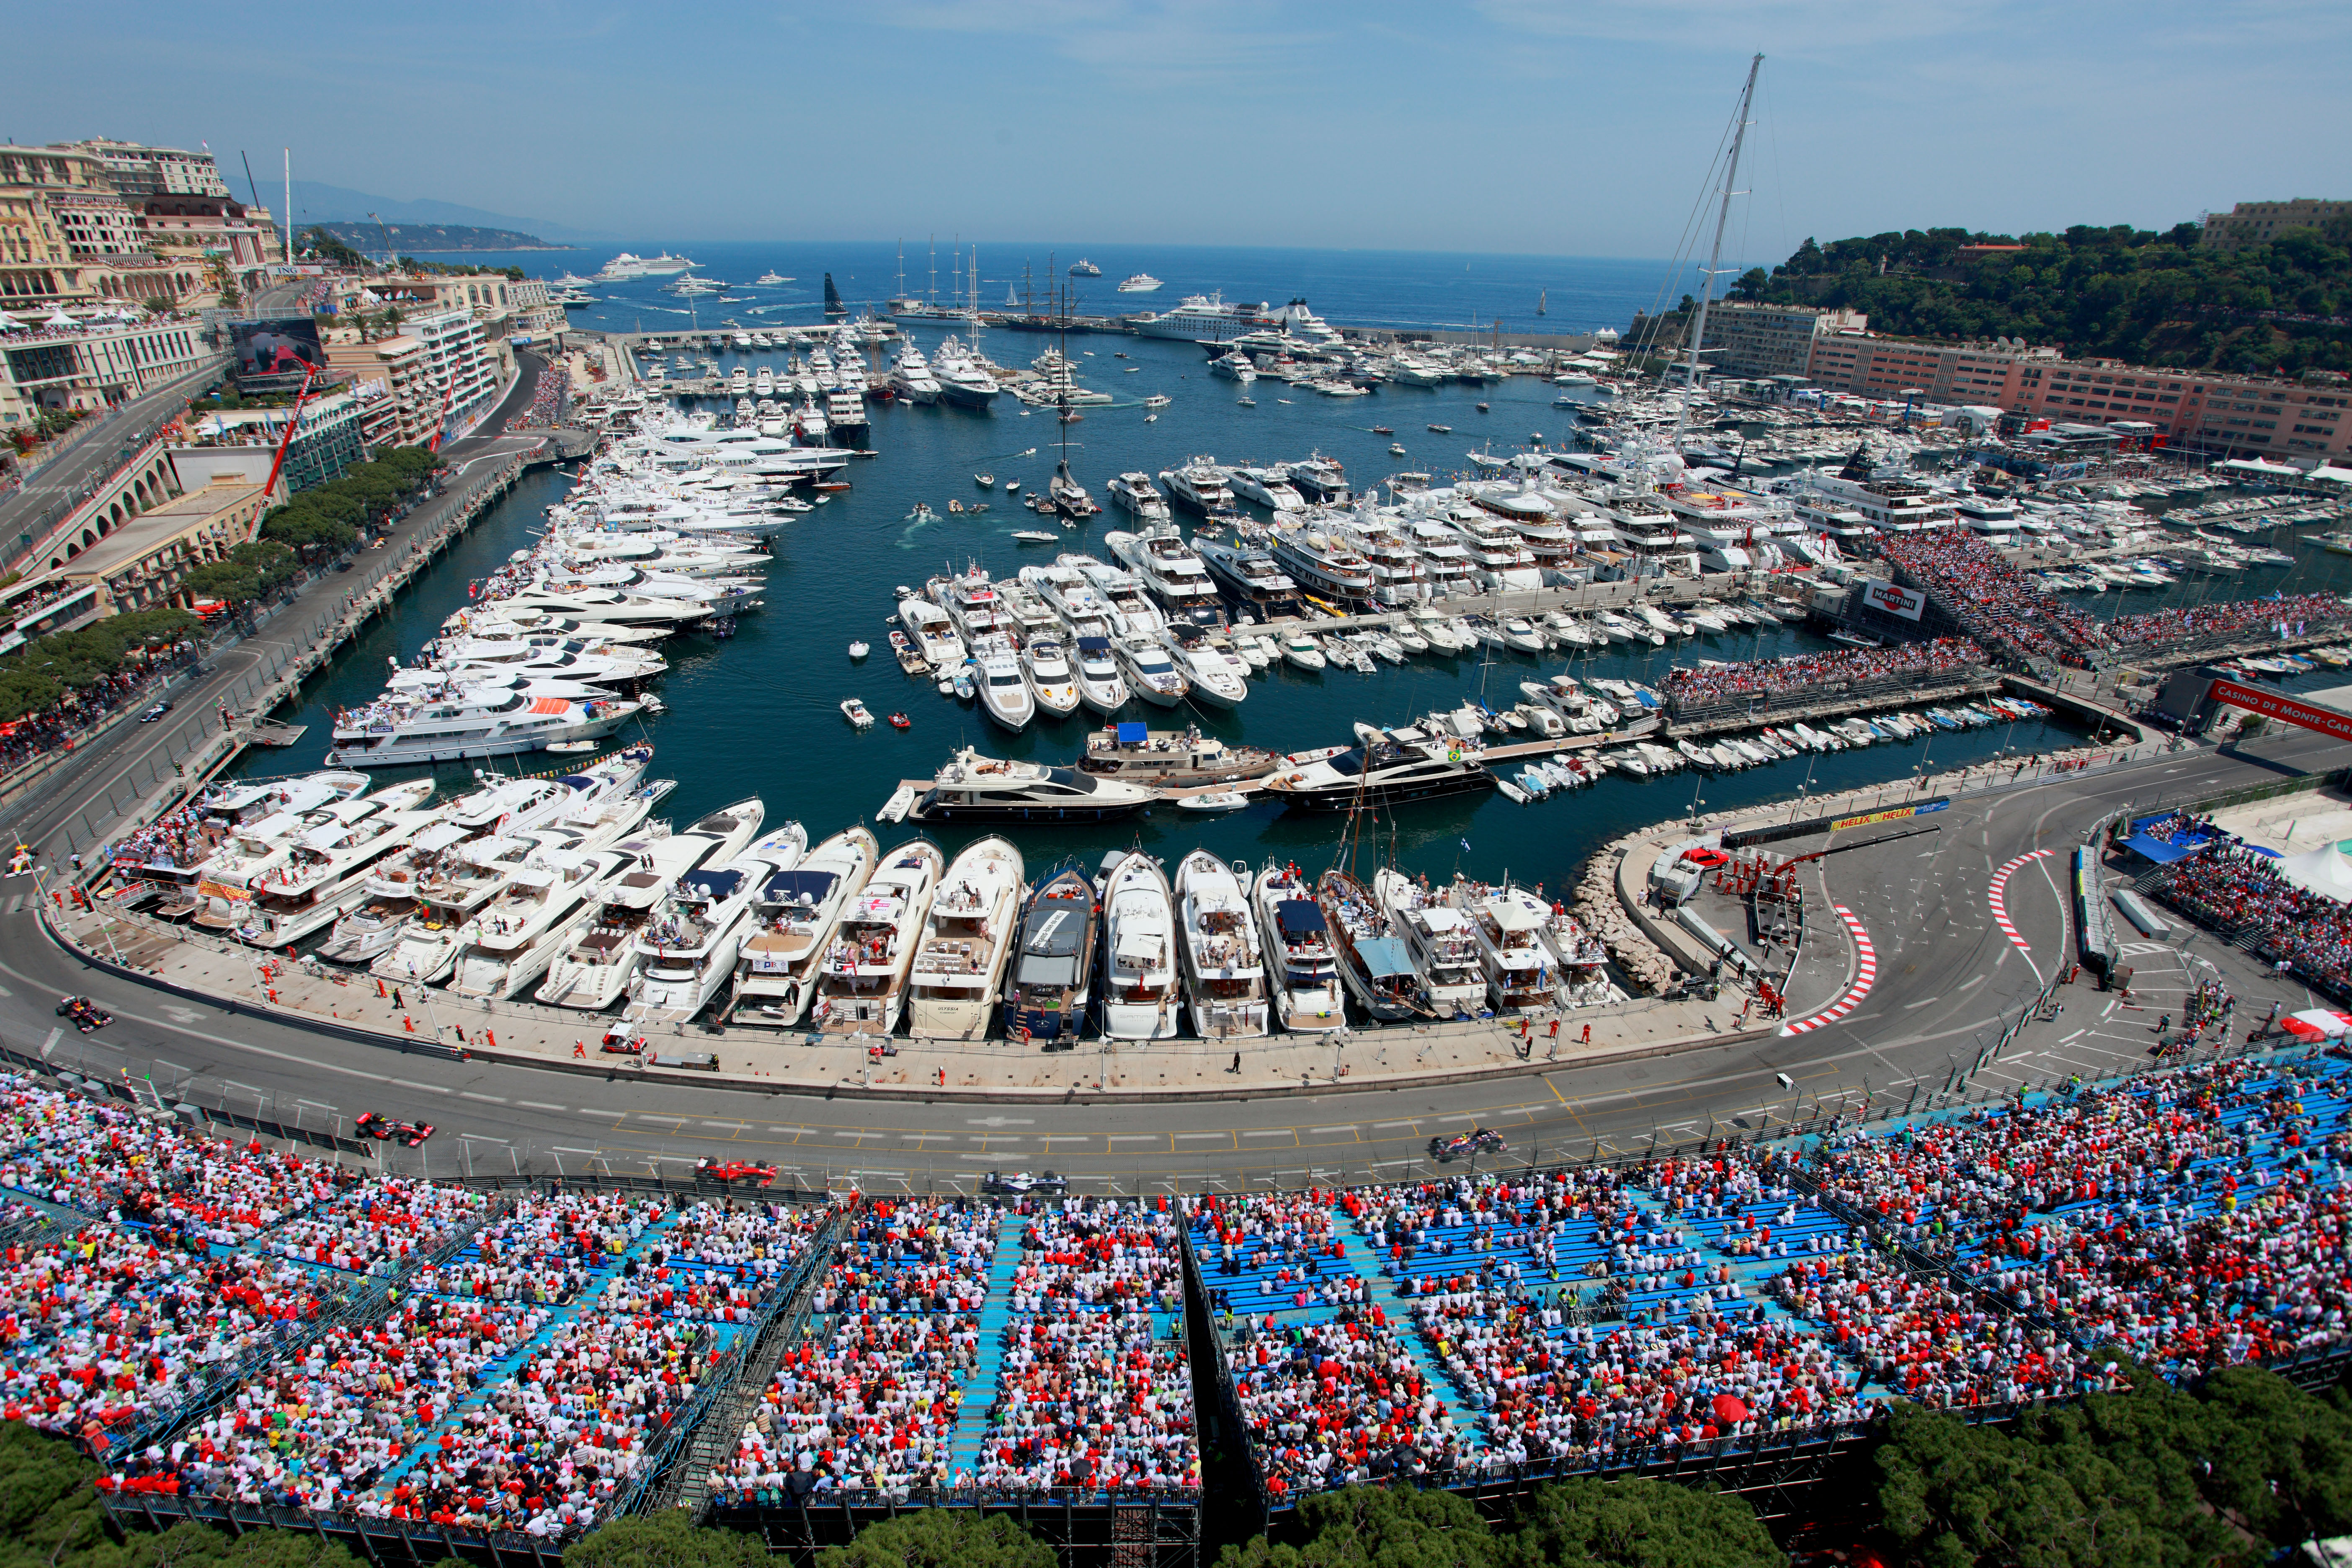 Monaco Grand Prix grandstand and harbor